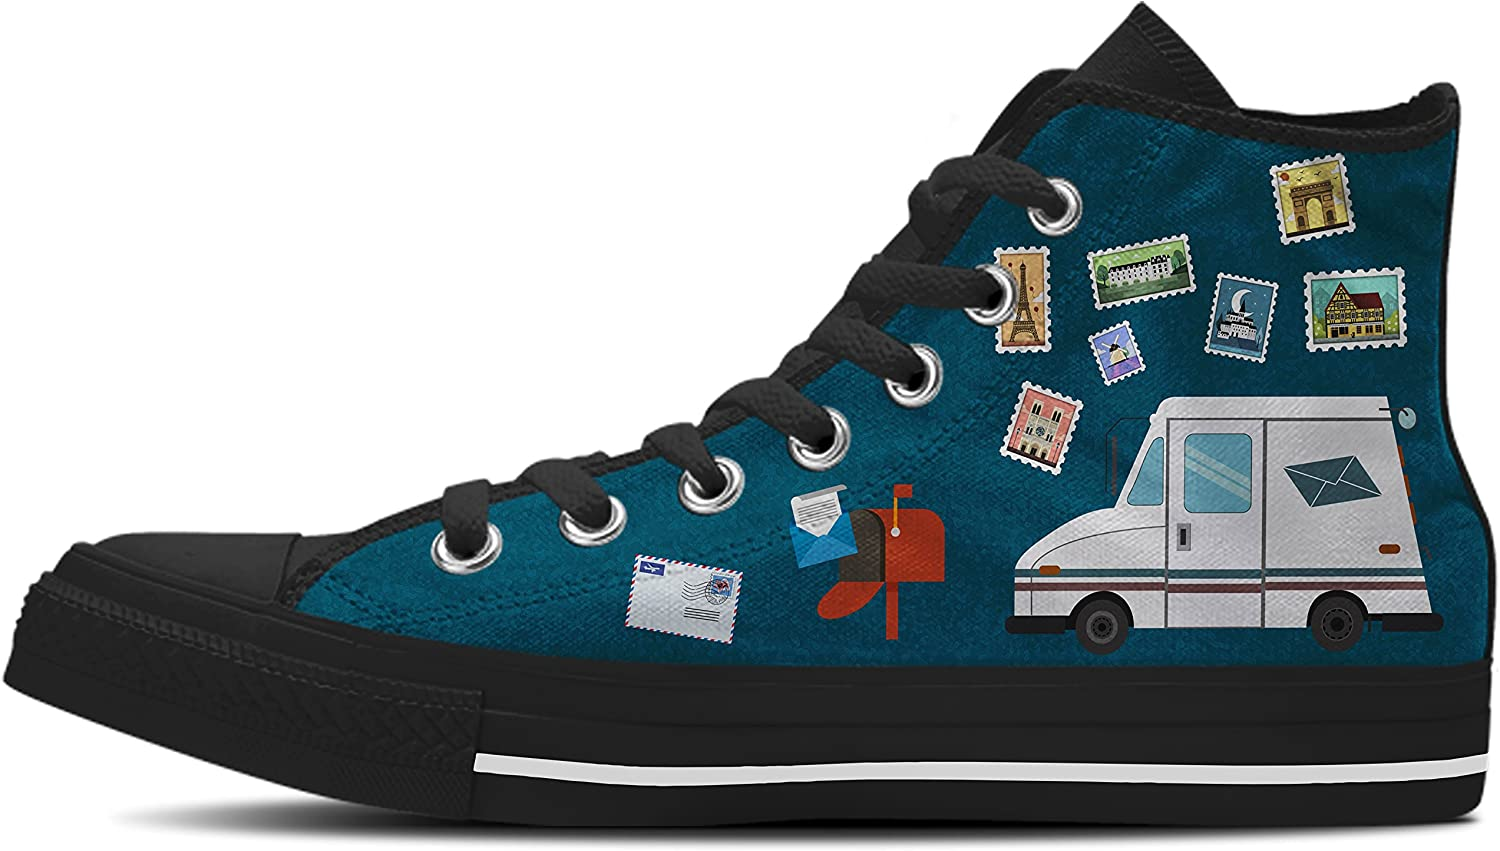 Gnarly Tees Men's Postal Worker shoes High Top